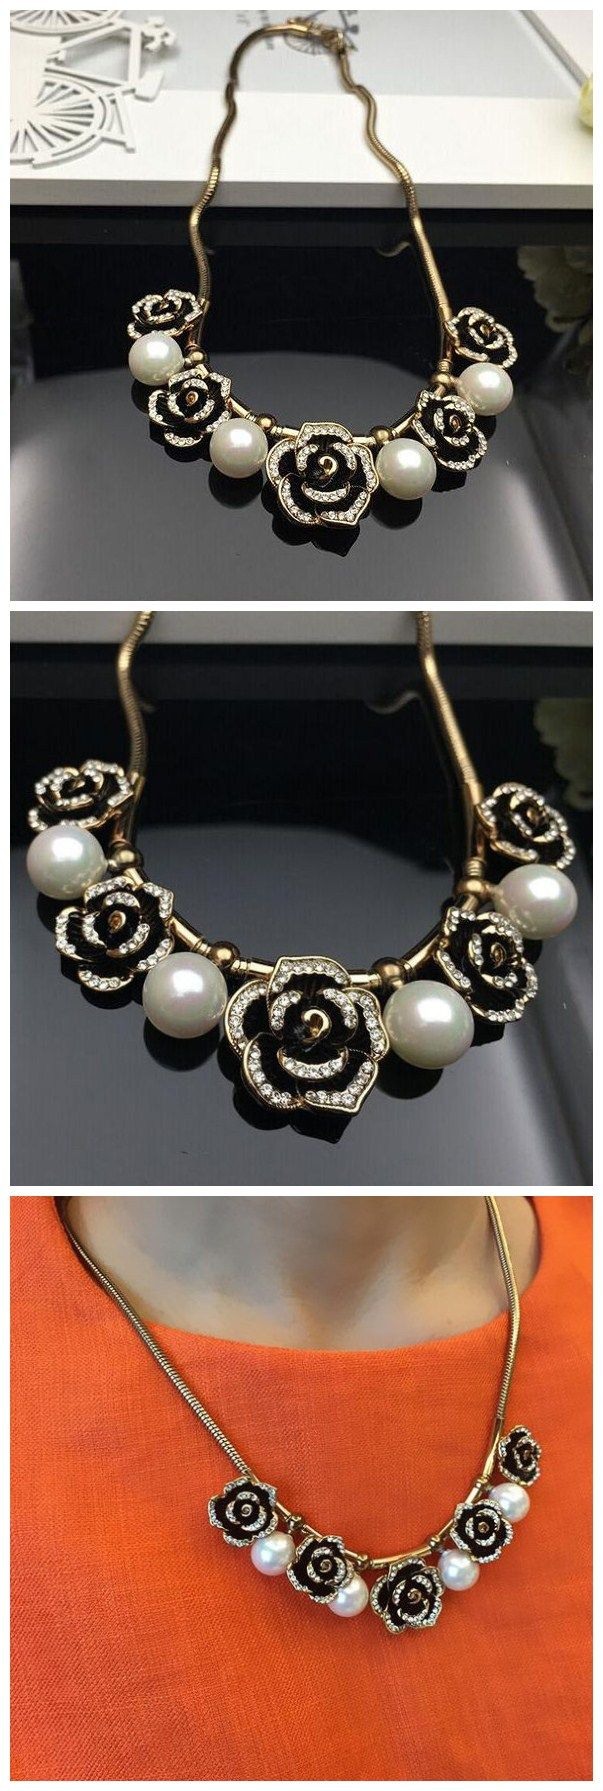 Ladylike Pearls and Stereo Rose Cheap Necklace